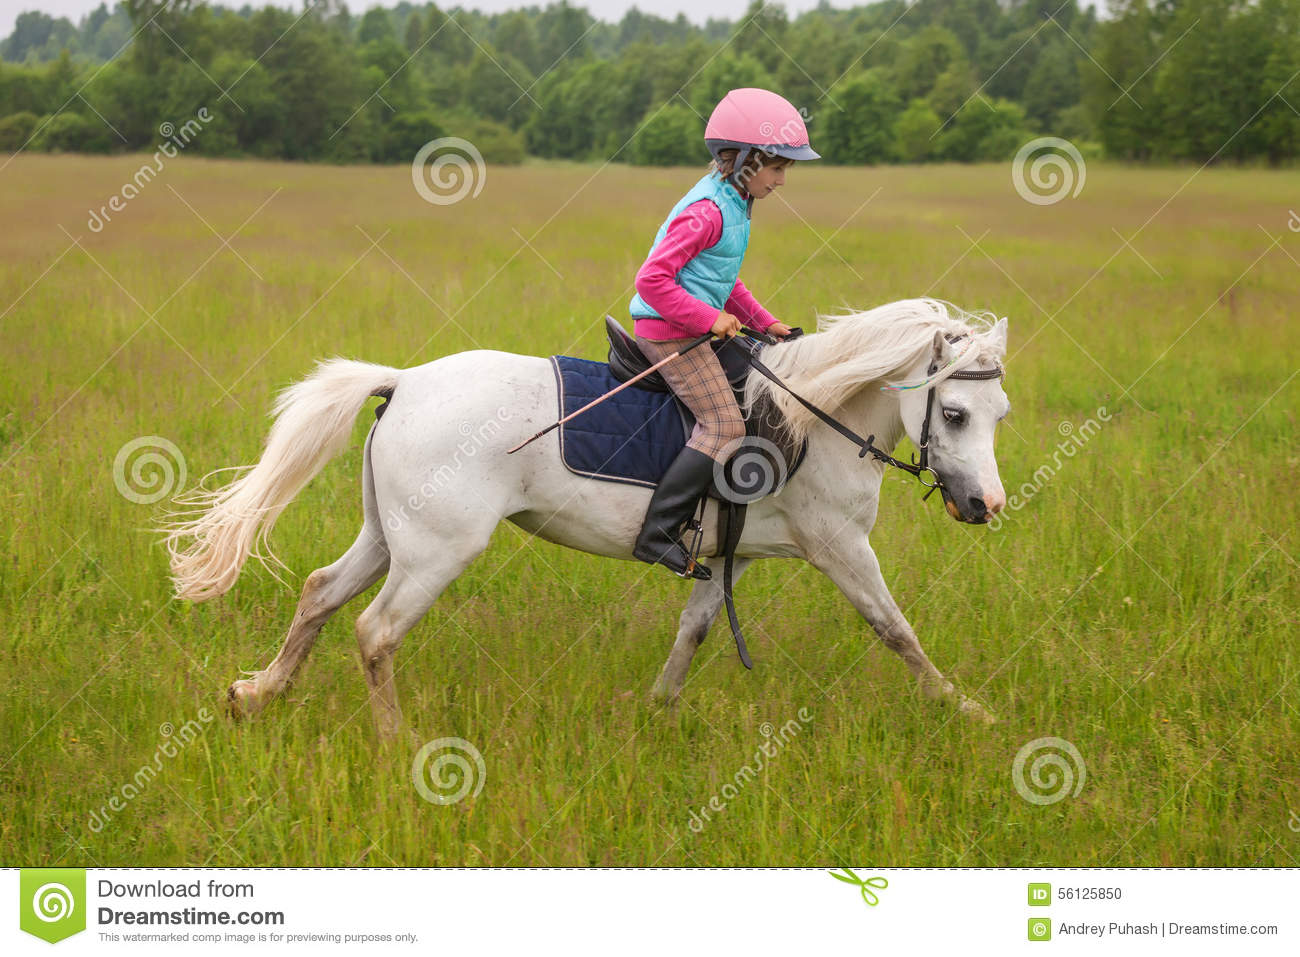 Young girl confident galloping horse on the field